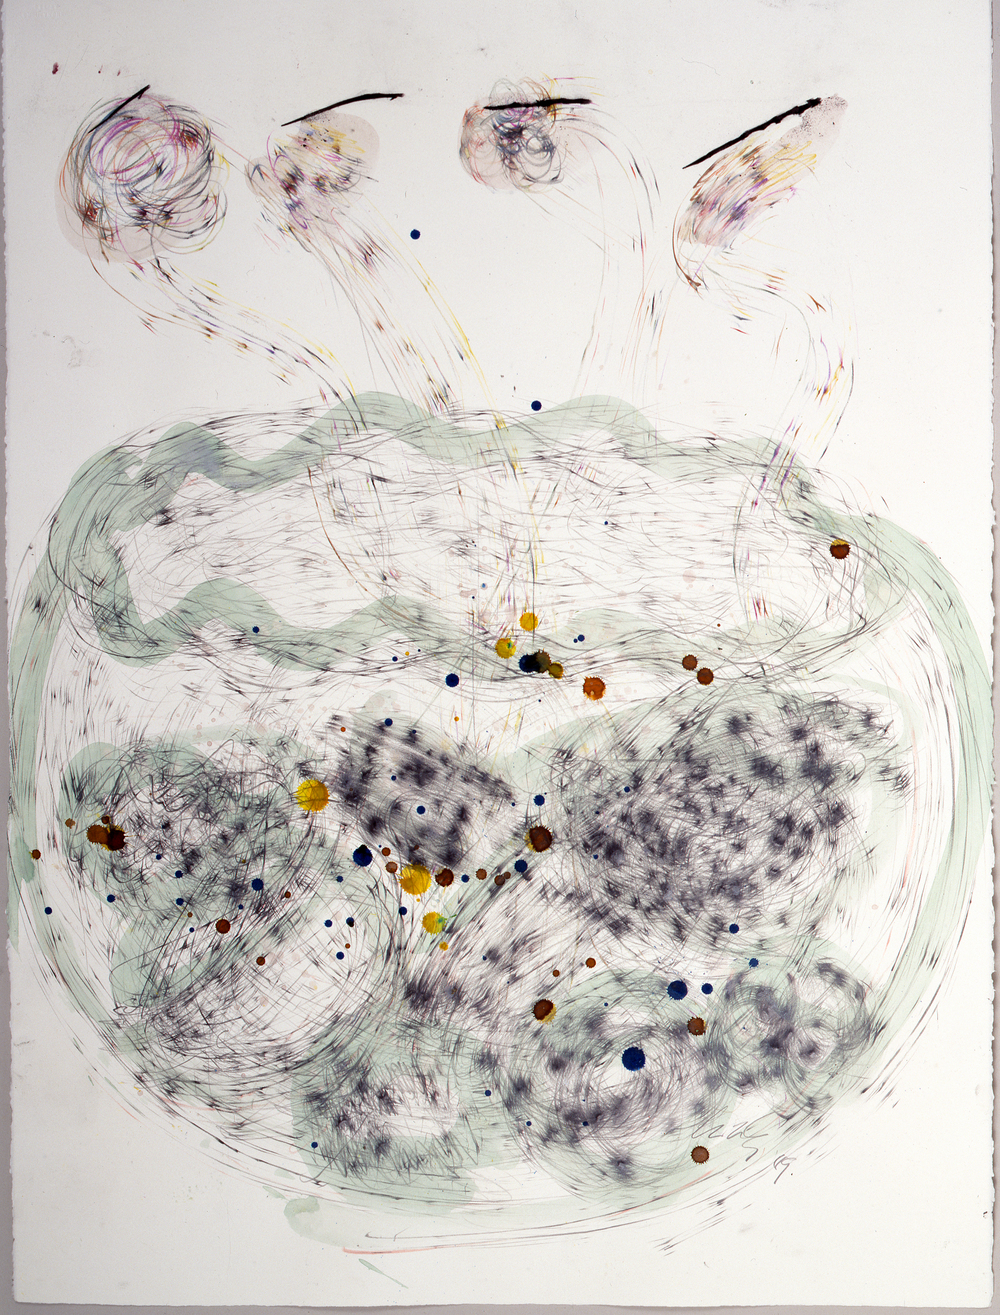 Dale Chihuly,  Niijima Drawing,  (watercolor, charcoal, colored pencil and graphite on paper, 30 x 22 inches), DC.372